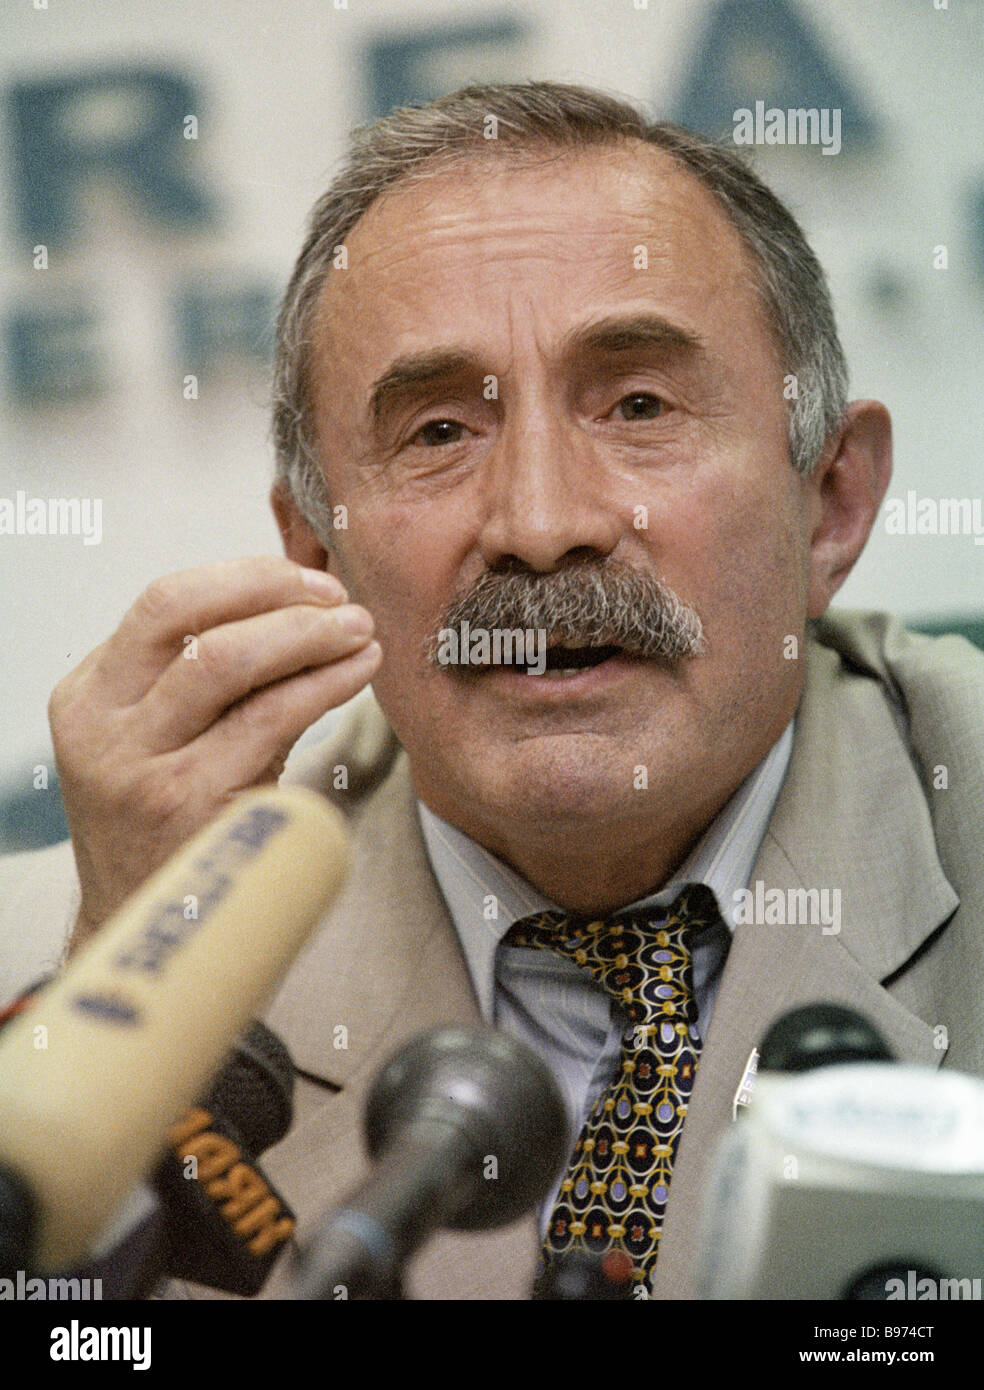 State Duma deputy from Chechnya and republican presidential candidate Aslambek Aslakhanov - Stock Image